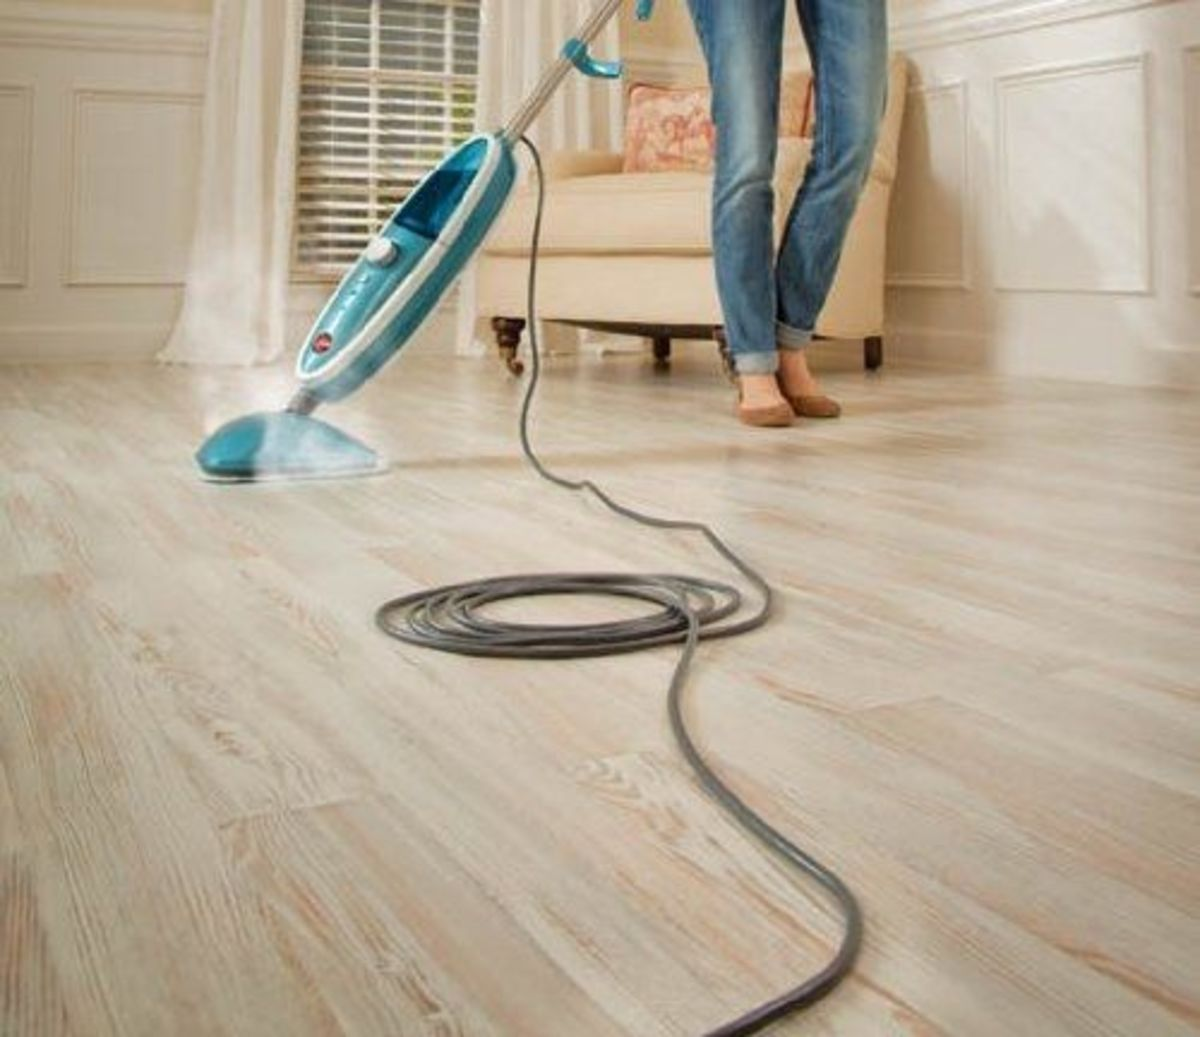 Cleaner For Laminate Floors peerless 750ml laminate floor cleaner How Safe Is Steam Cleaning Take Out The Guesswork